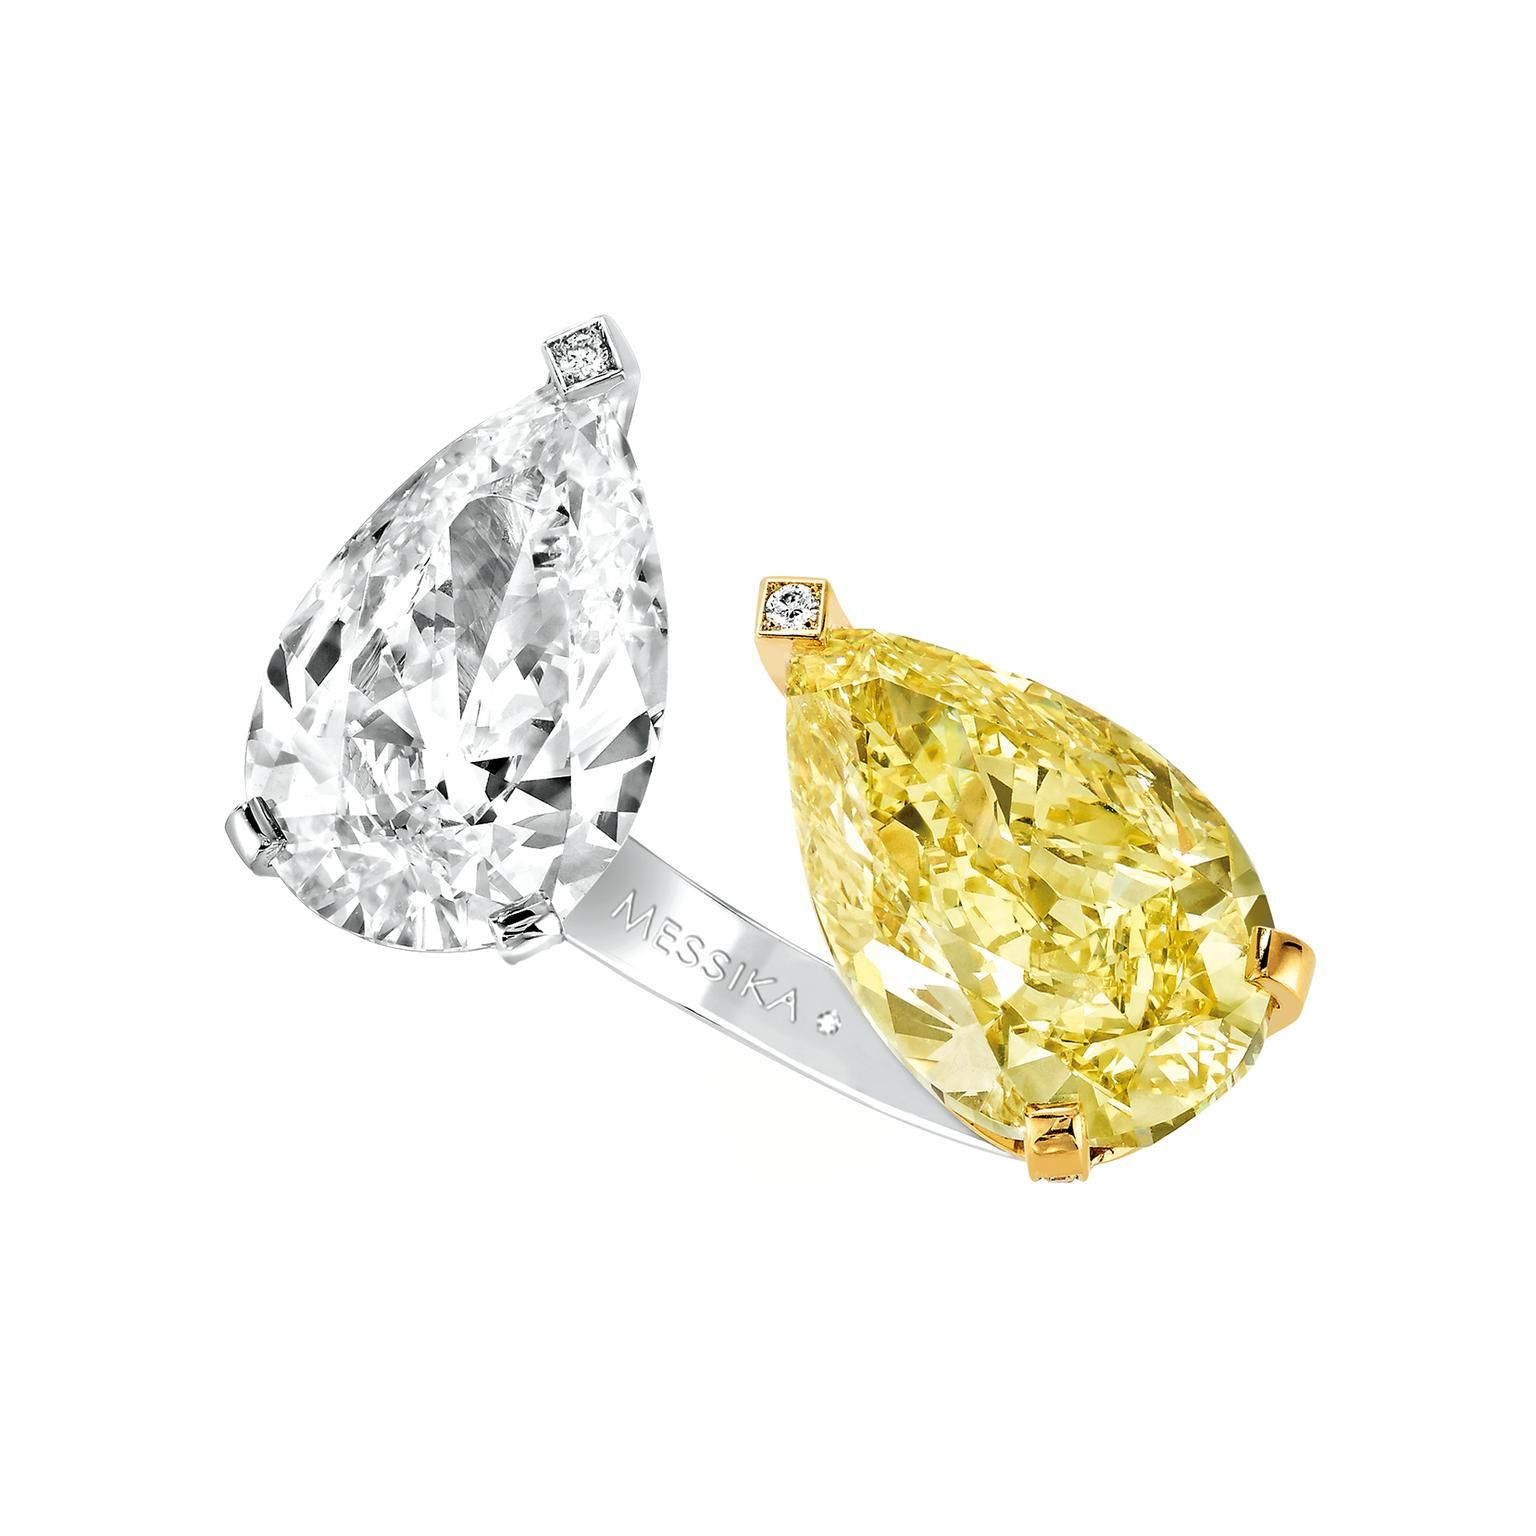 Messika Yellow and white diamond Toi et Moi high ring | The Jewellery Editor